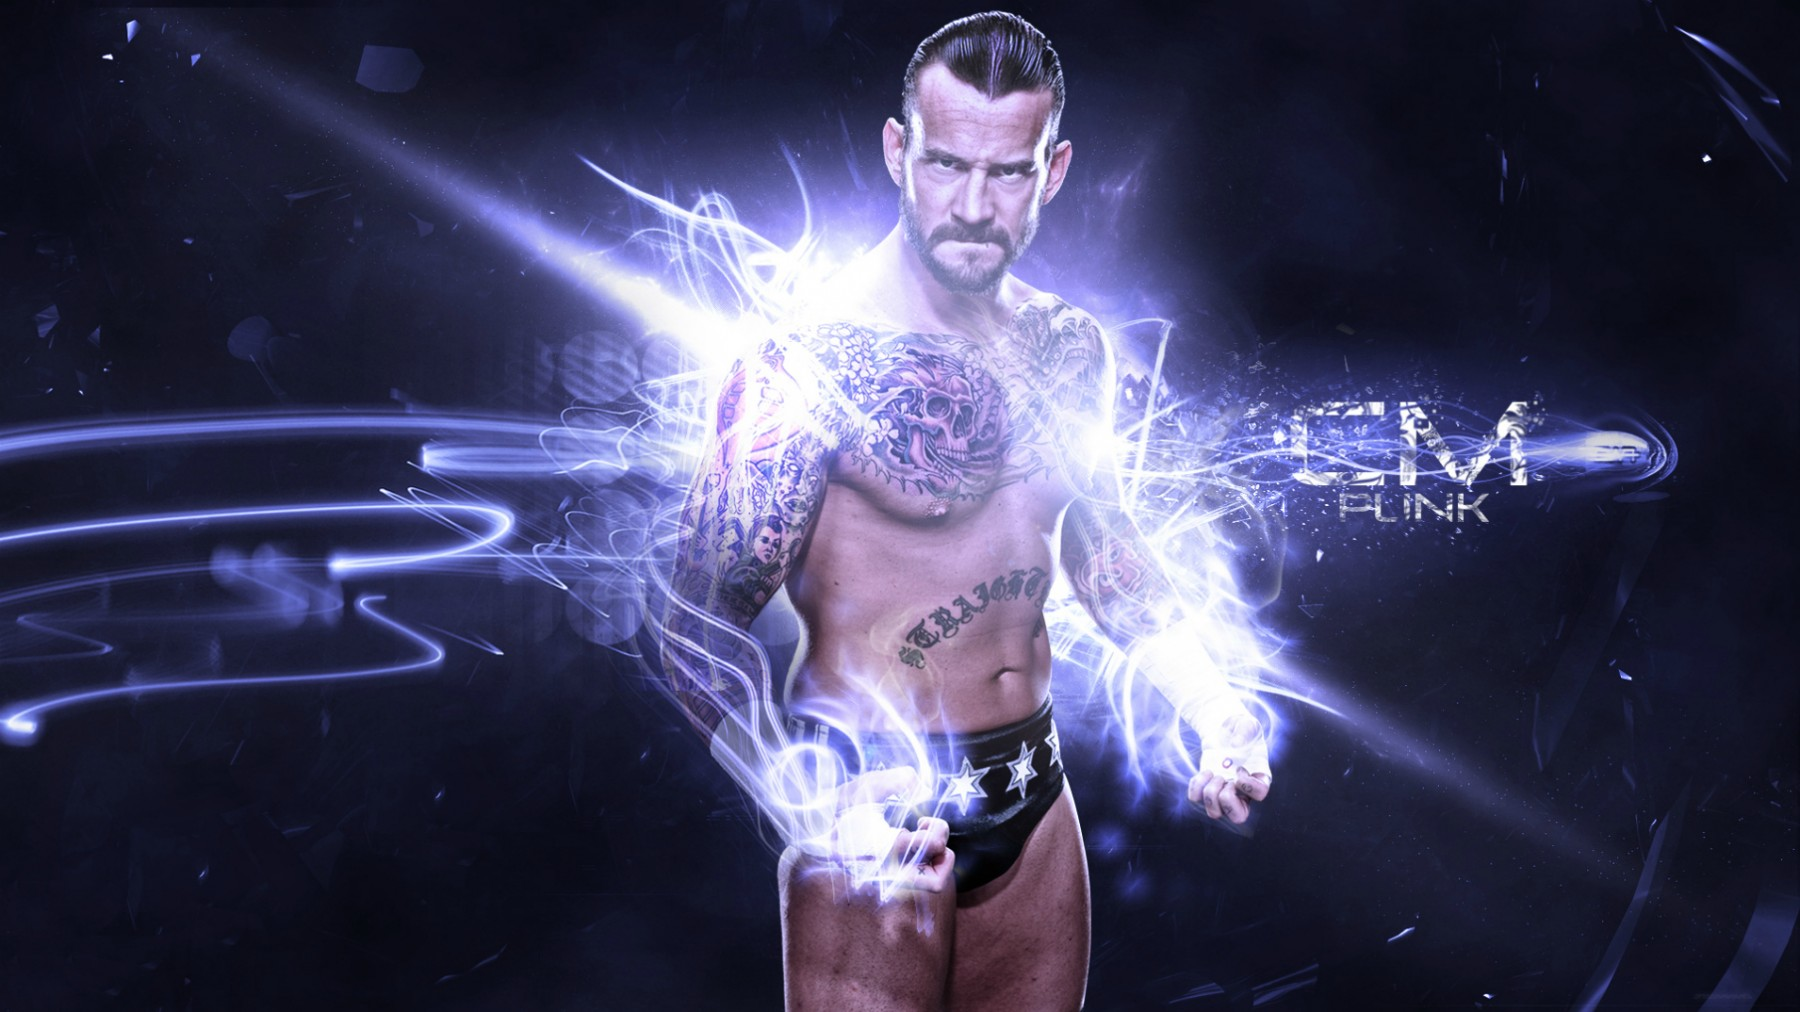 Cm Punk Wallpapers Free Download  PixelsTalk CM Punk Wallpapers, CM Punk HD Wallpapers, CM Punk Pictures,  HD 1800x1012